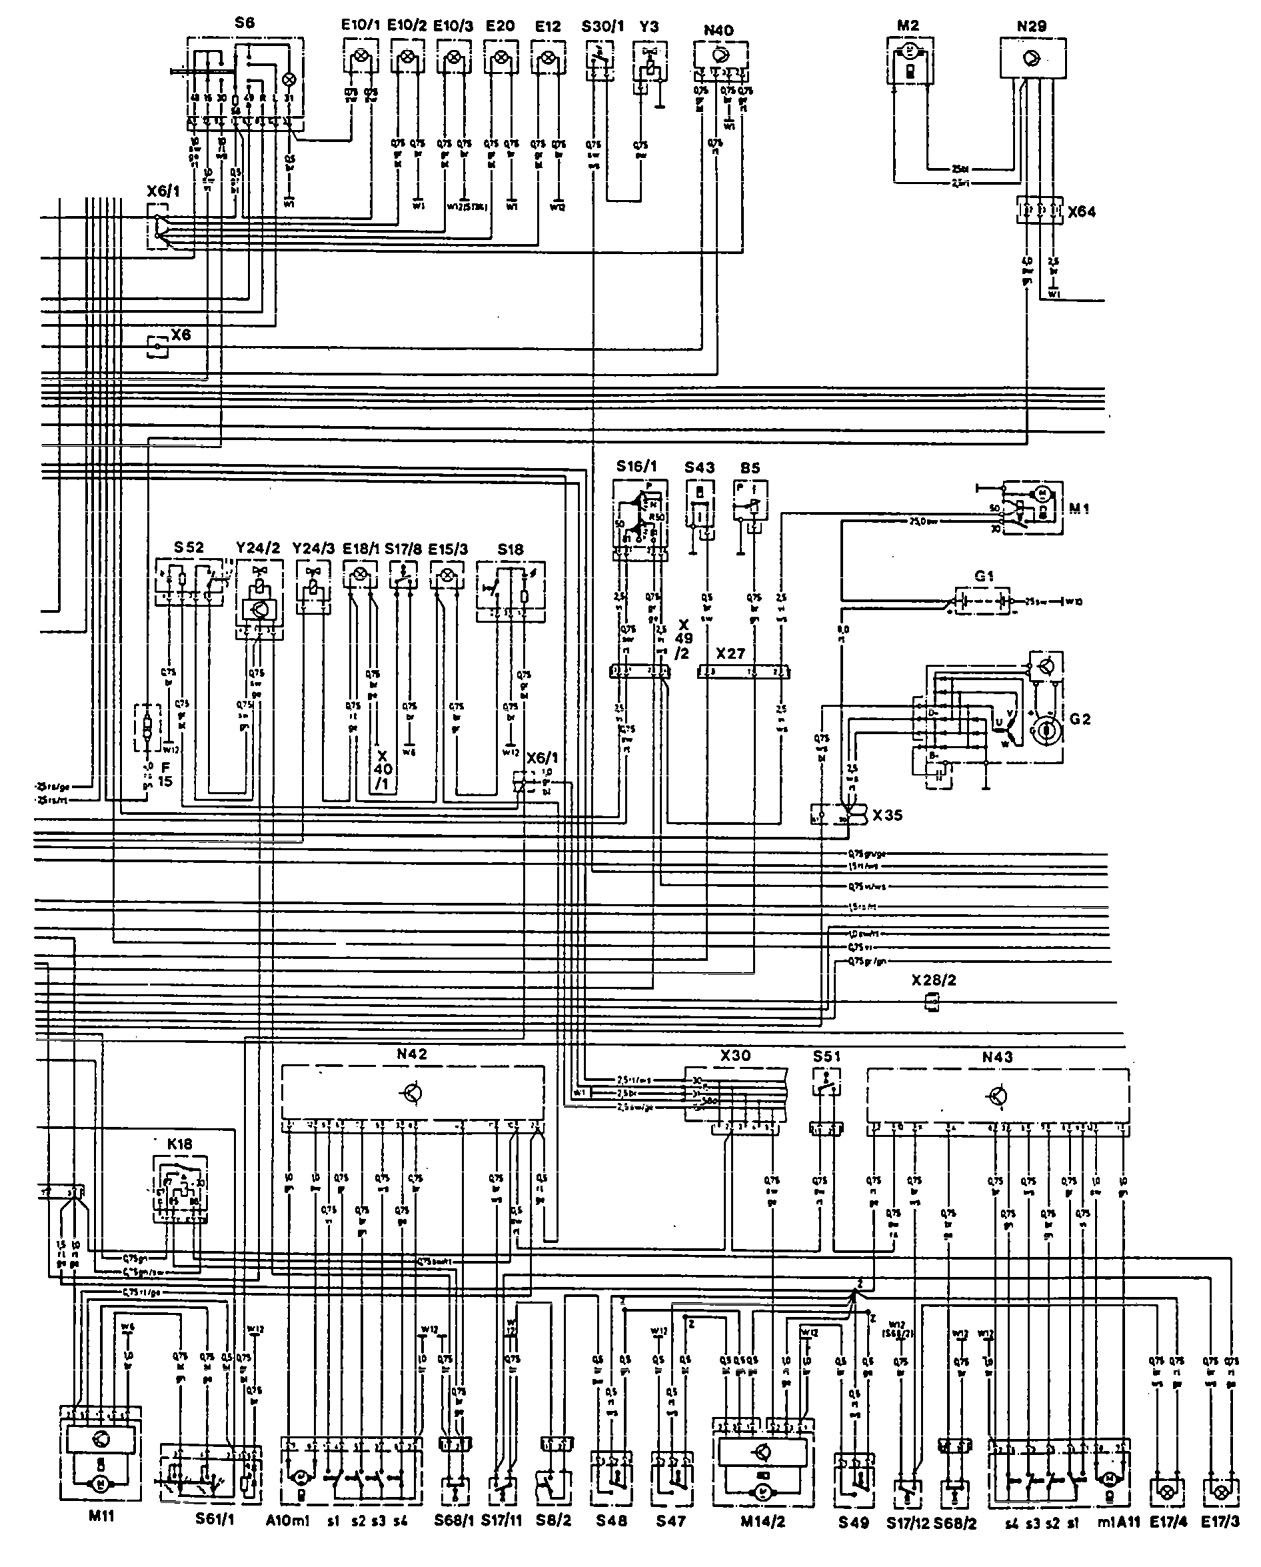 1966 mercedes 230s wiring diagram wiring diagram for Mercedes benz w124 230e wiring diagram